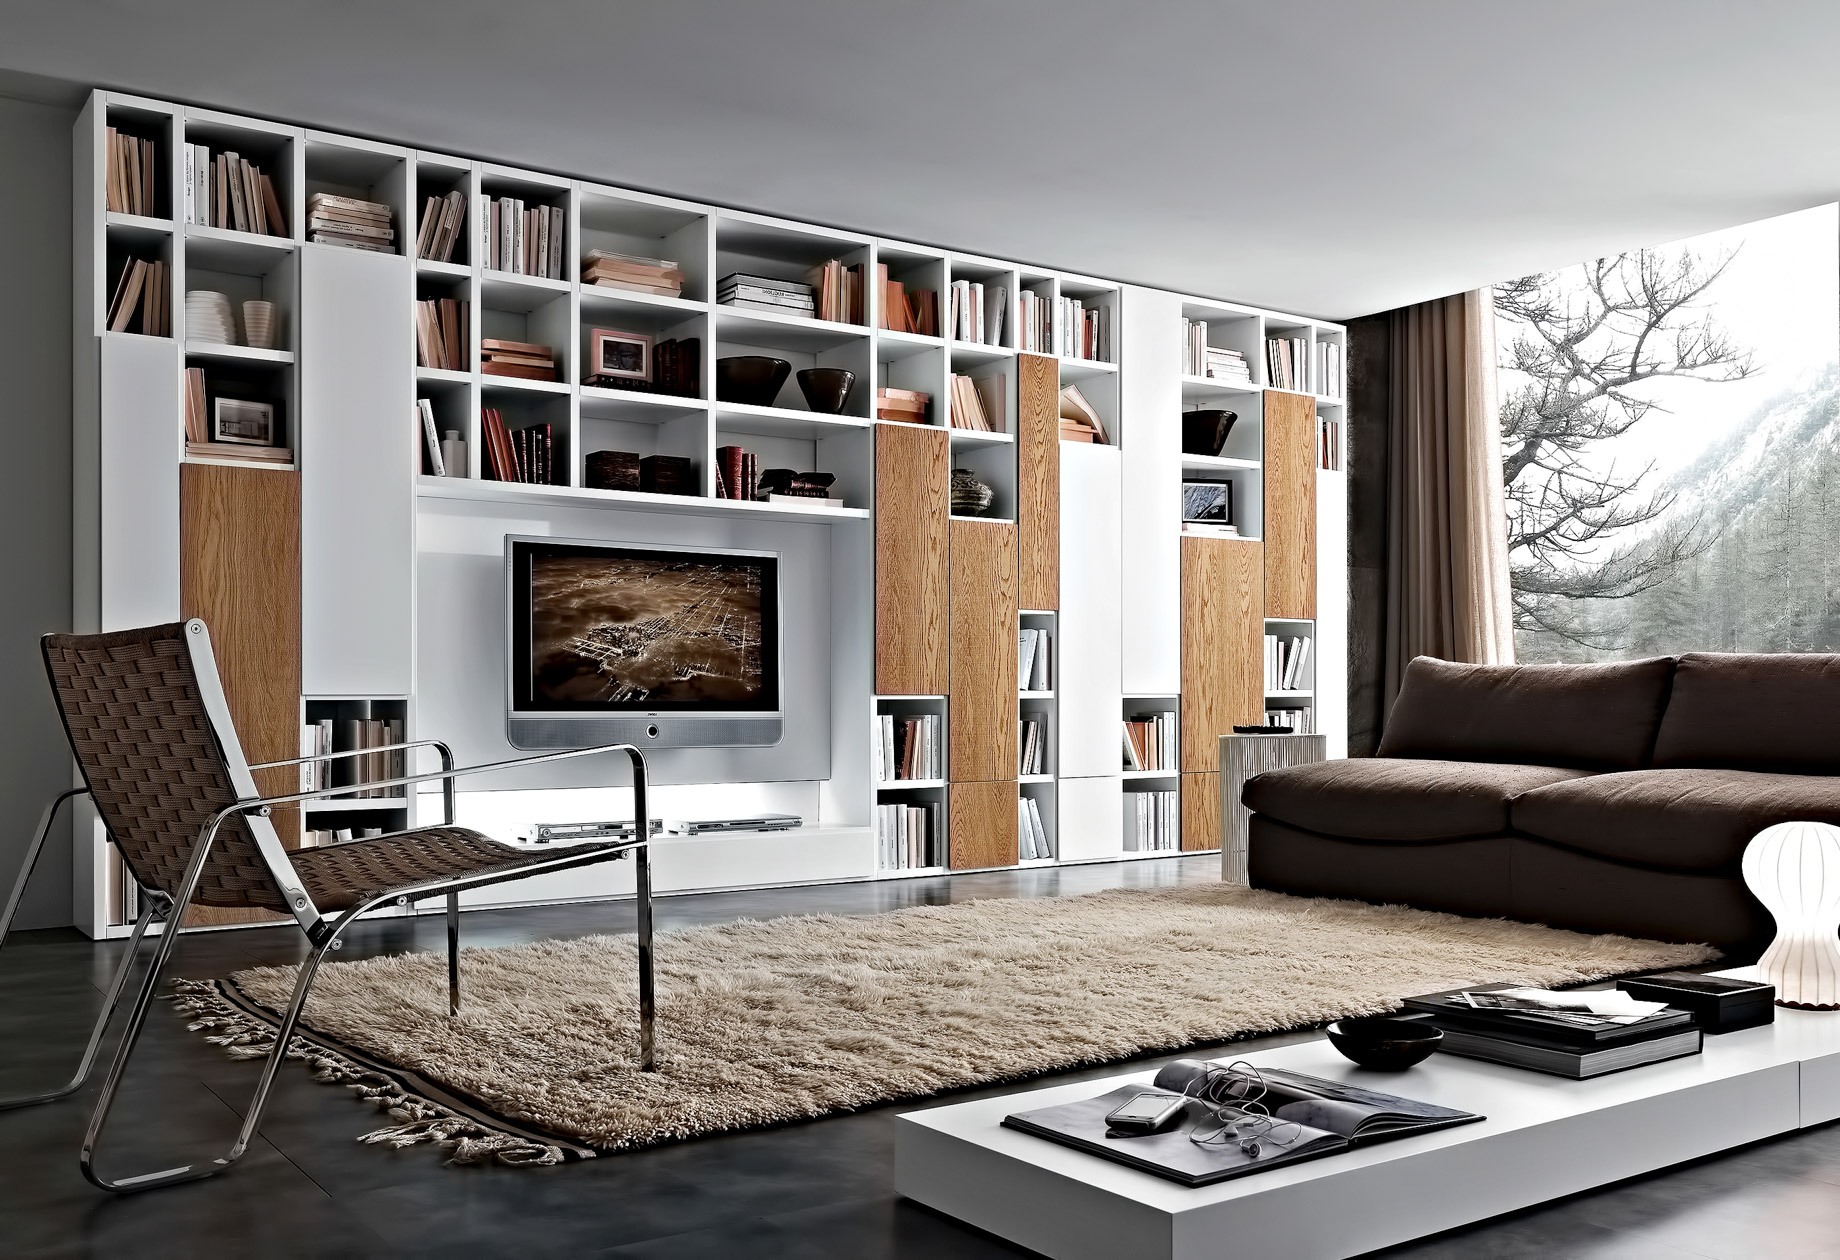 Luxury Home Trends - Adjustable Shelves Cabinets and Bookcases